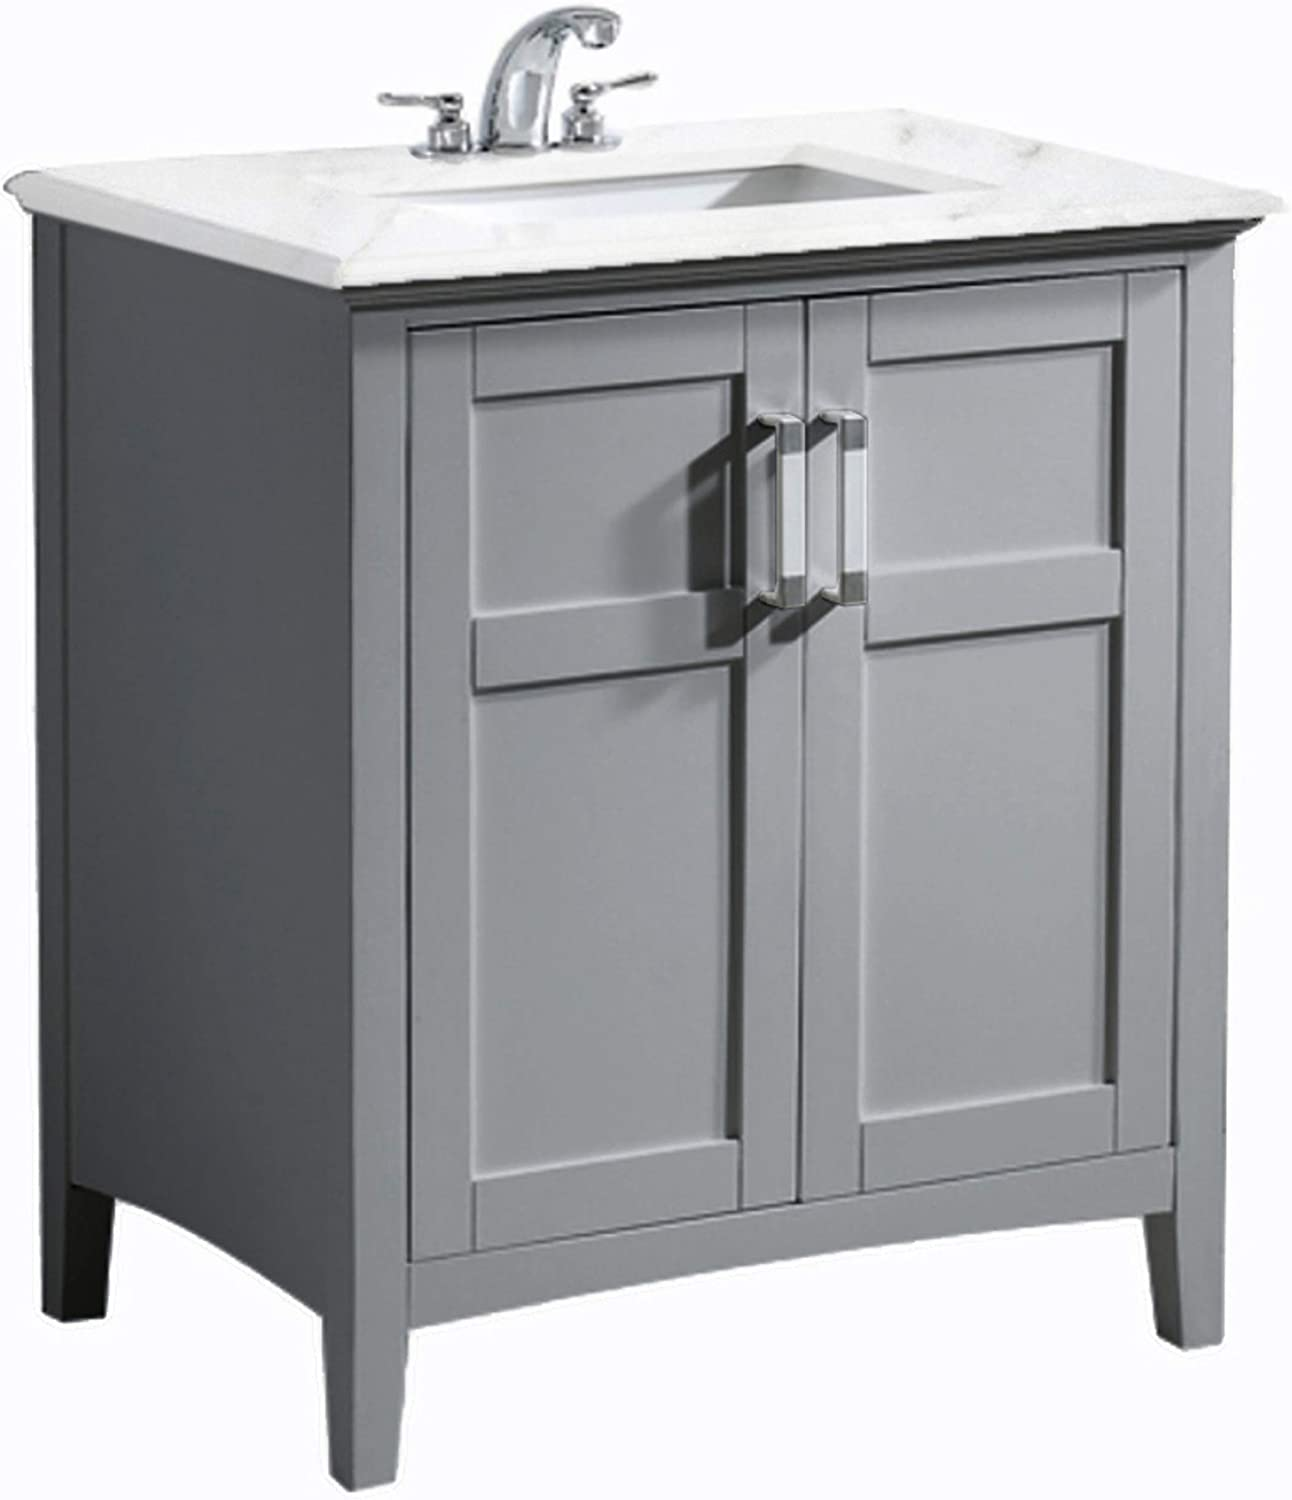 SIMPLIHOME Winston 30 inch Contemporary Bath Vanity in Warm Grey with Bombay White Engineered Quartz Marble Extra Thick Top